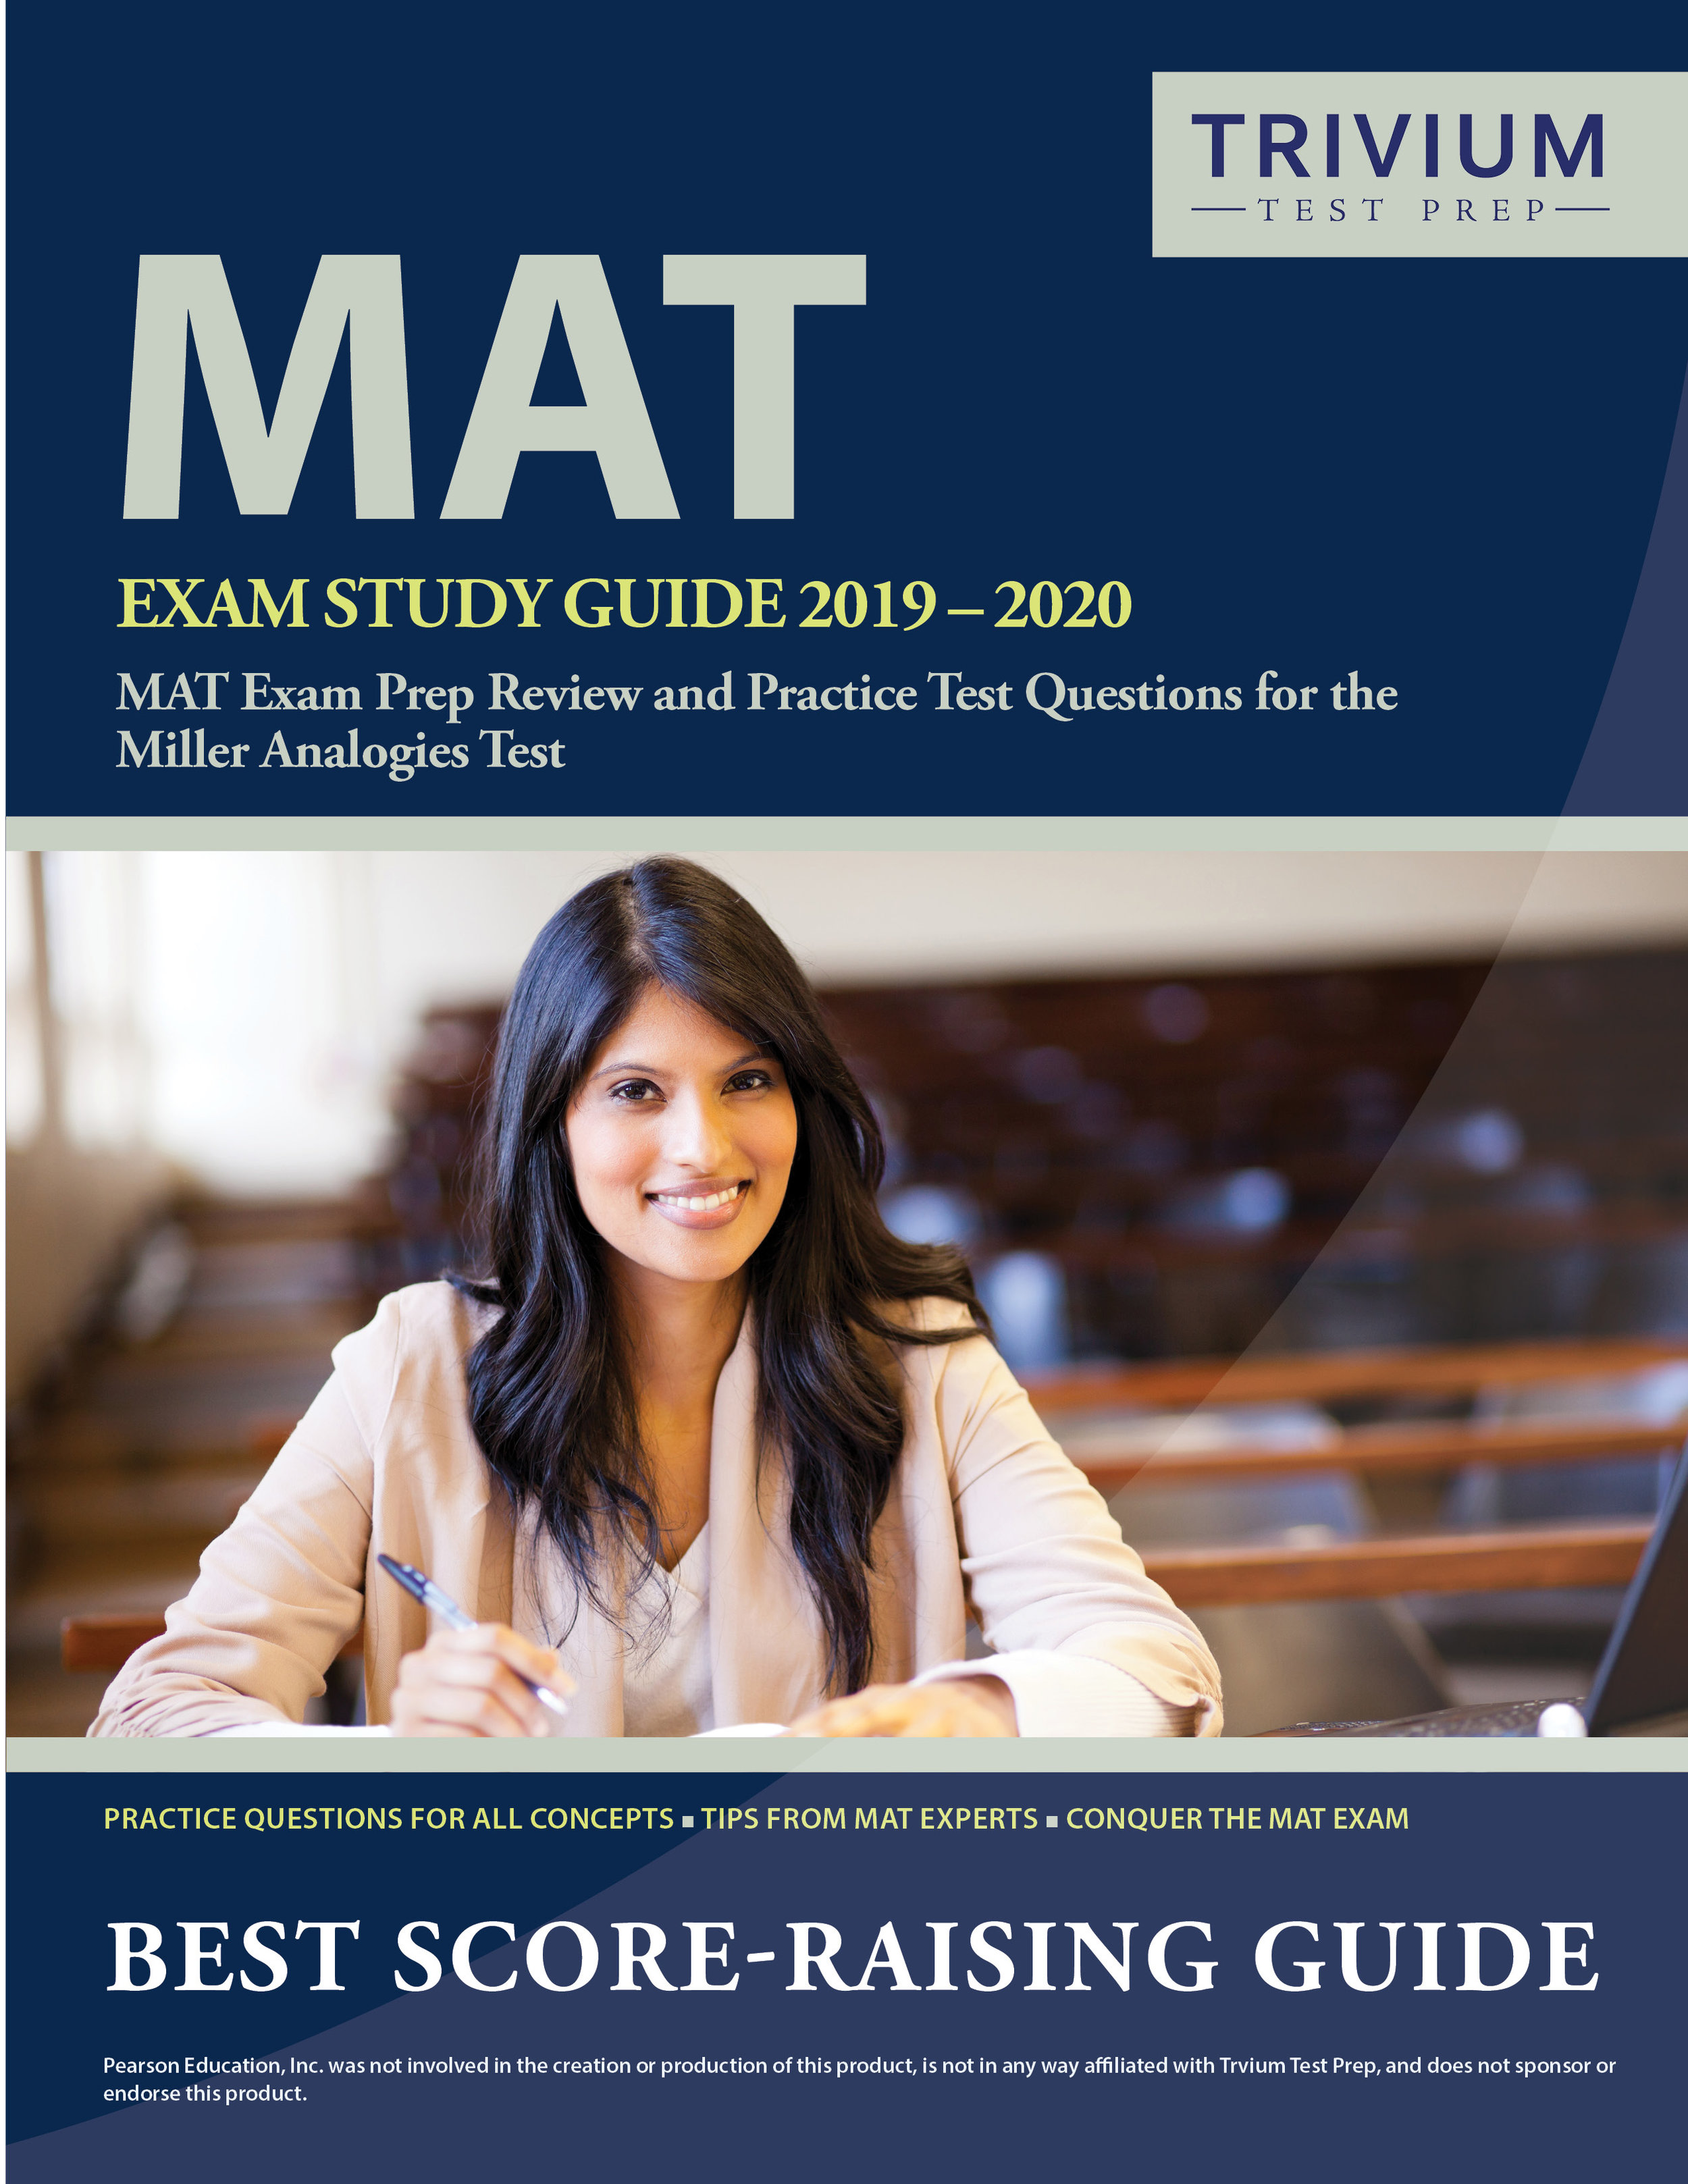 MAT_cover_2019_website.jpg